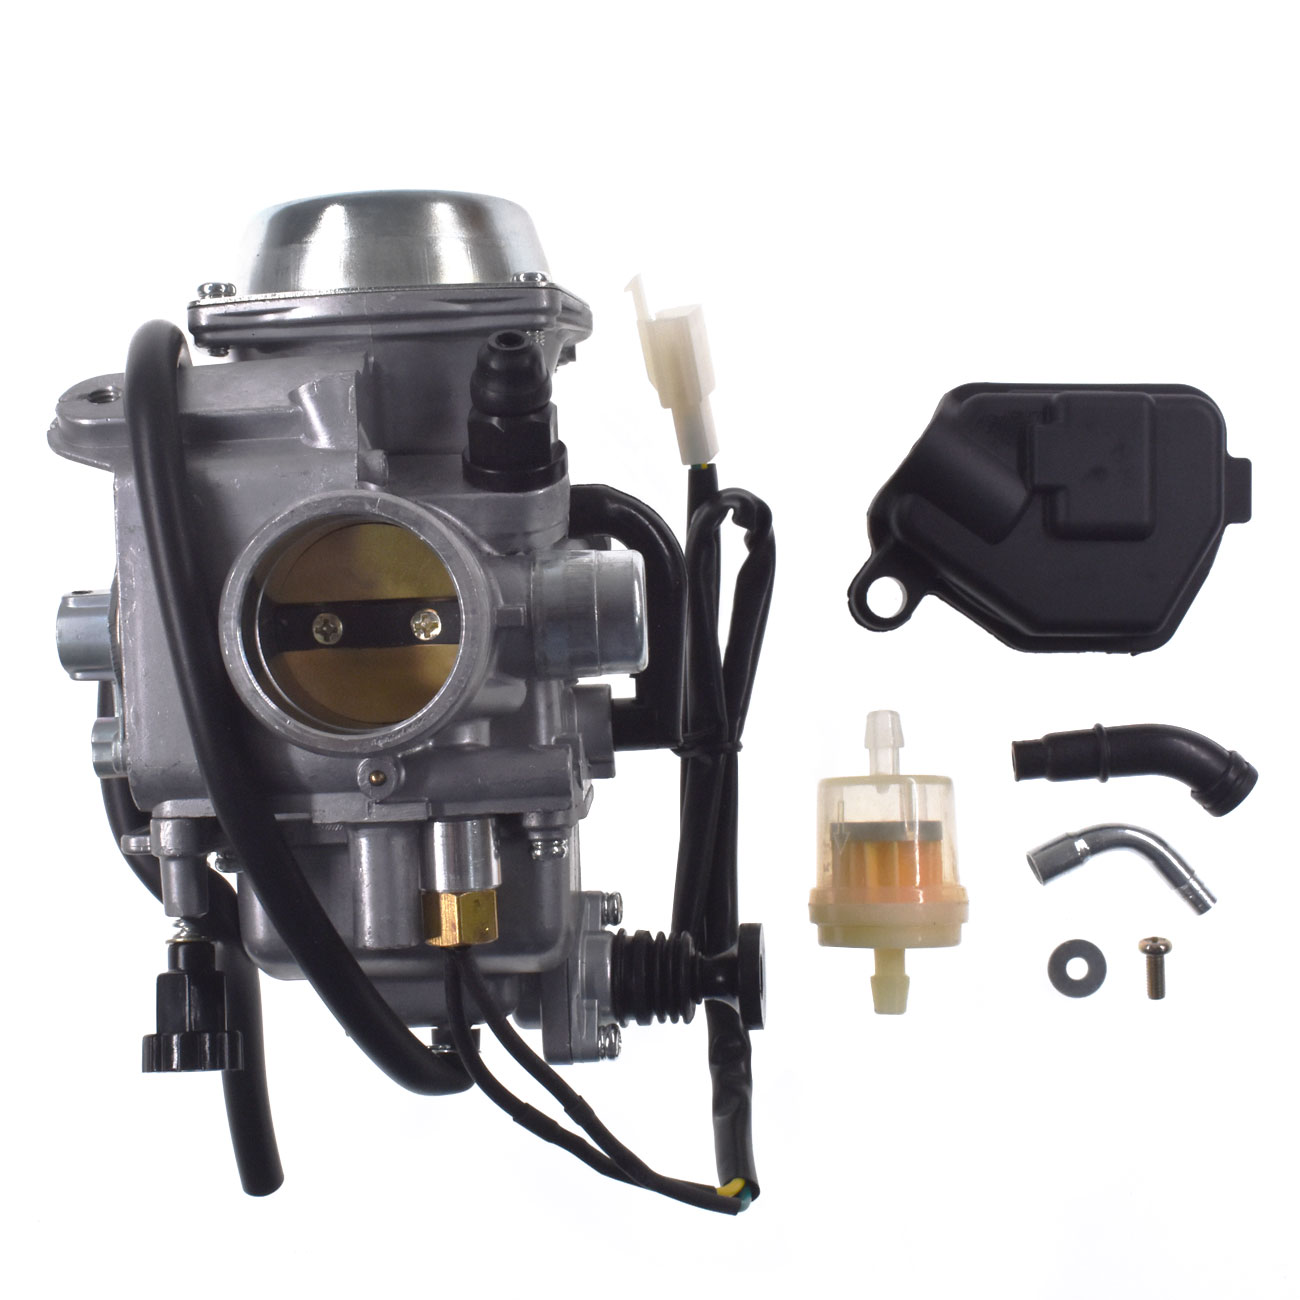 Carburetor Carb FOR Honda TRX 450 Foreman 2002 2003 2004 16100-HN0-672 trx 500 foreman carburetor carb 2005 2011 brand new highest quality